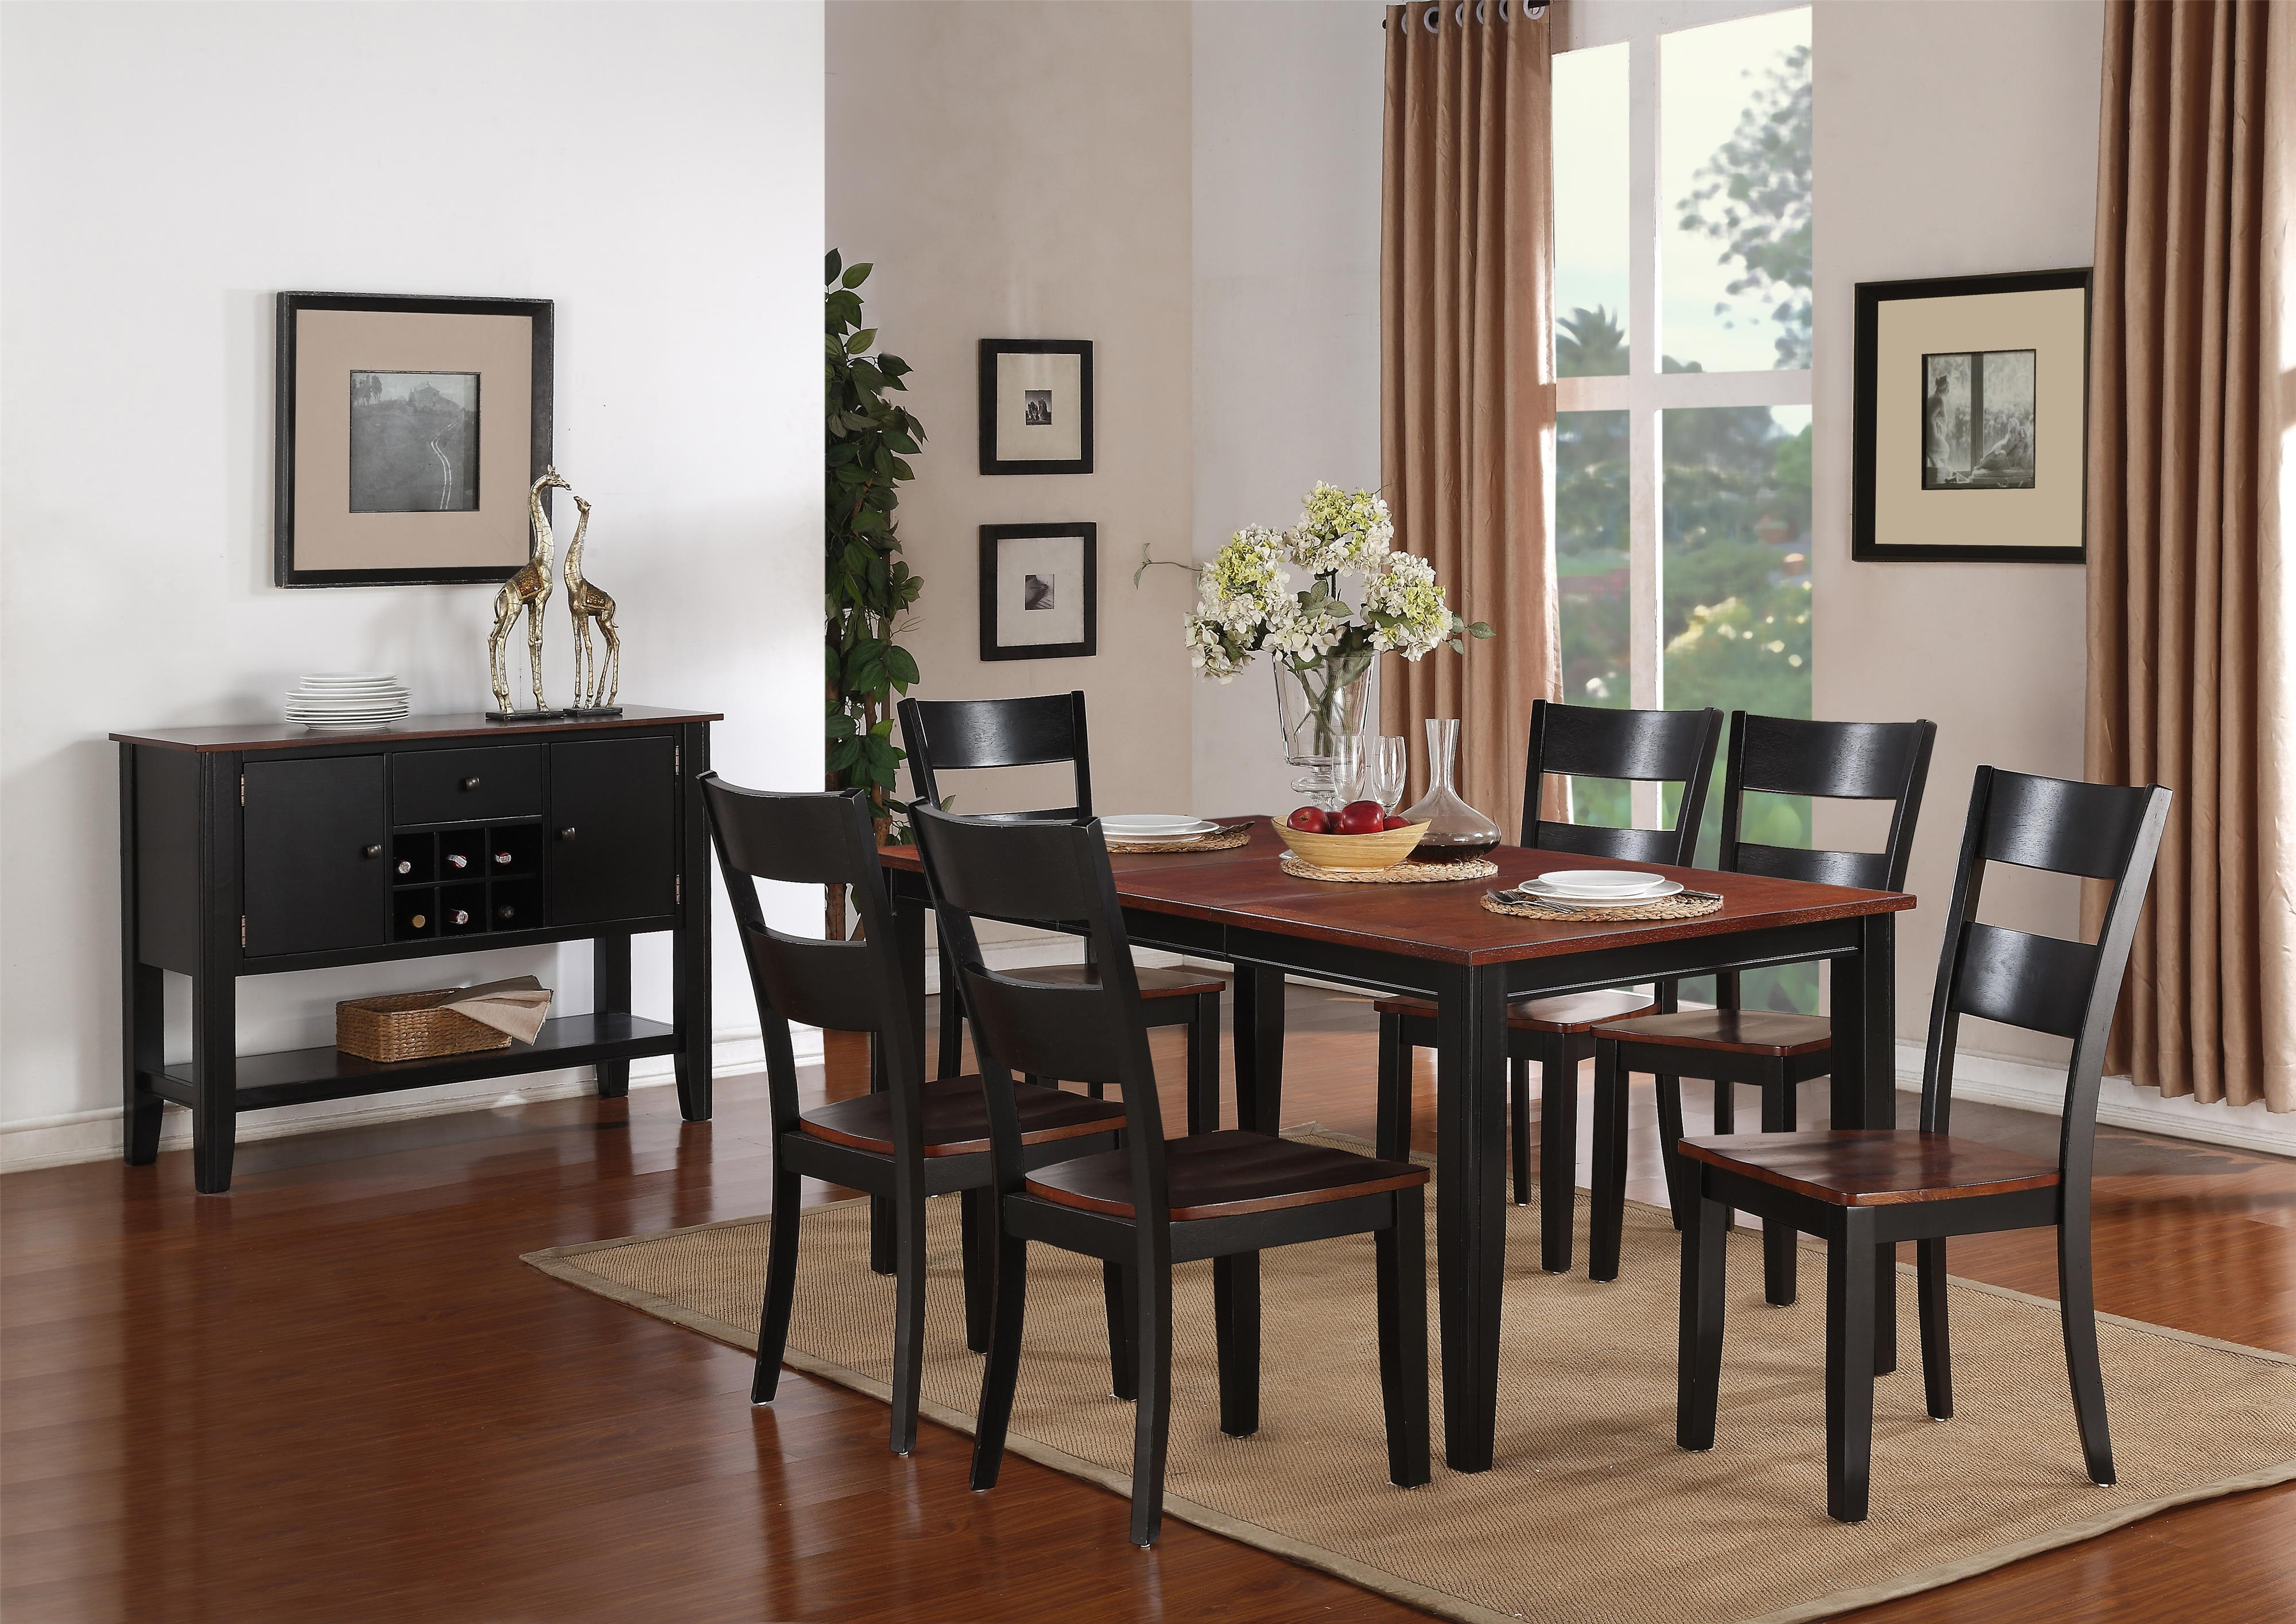 Holland House 8202 Rectangular Table with Tapered Legs ...